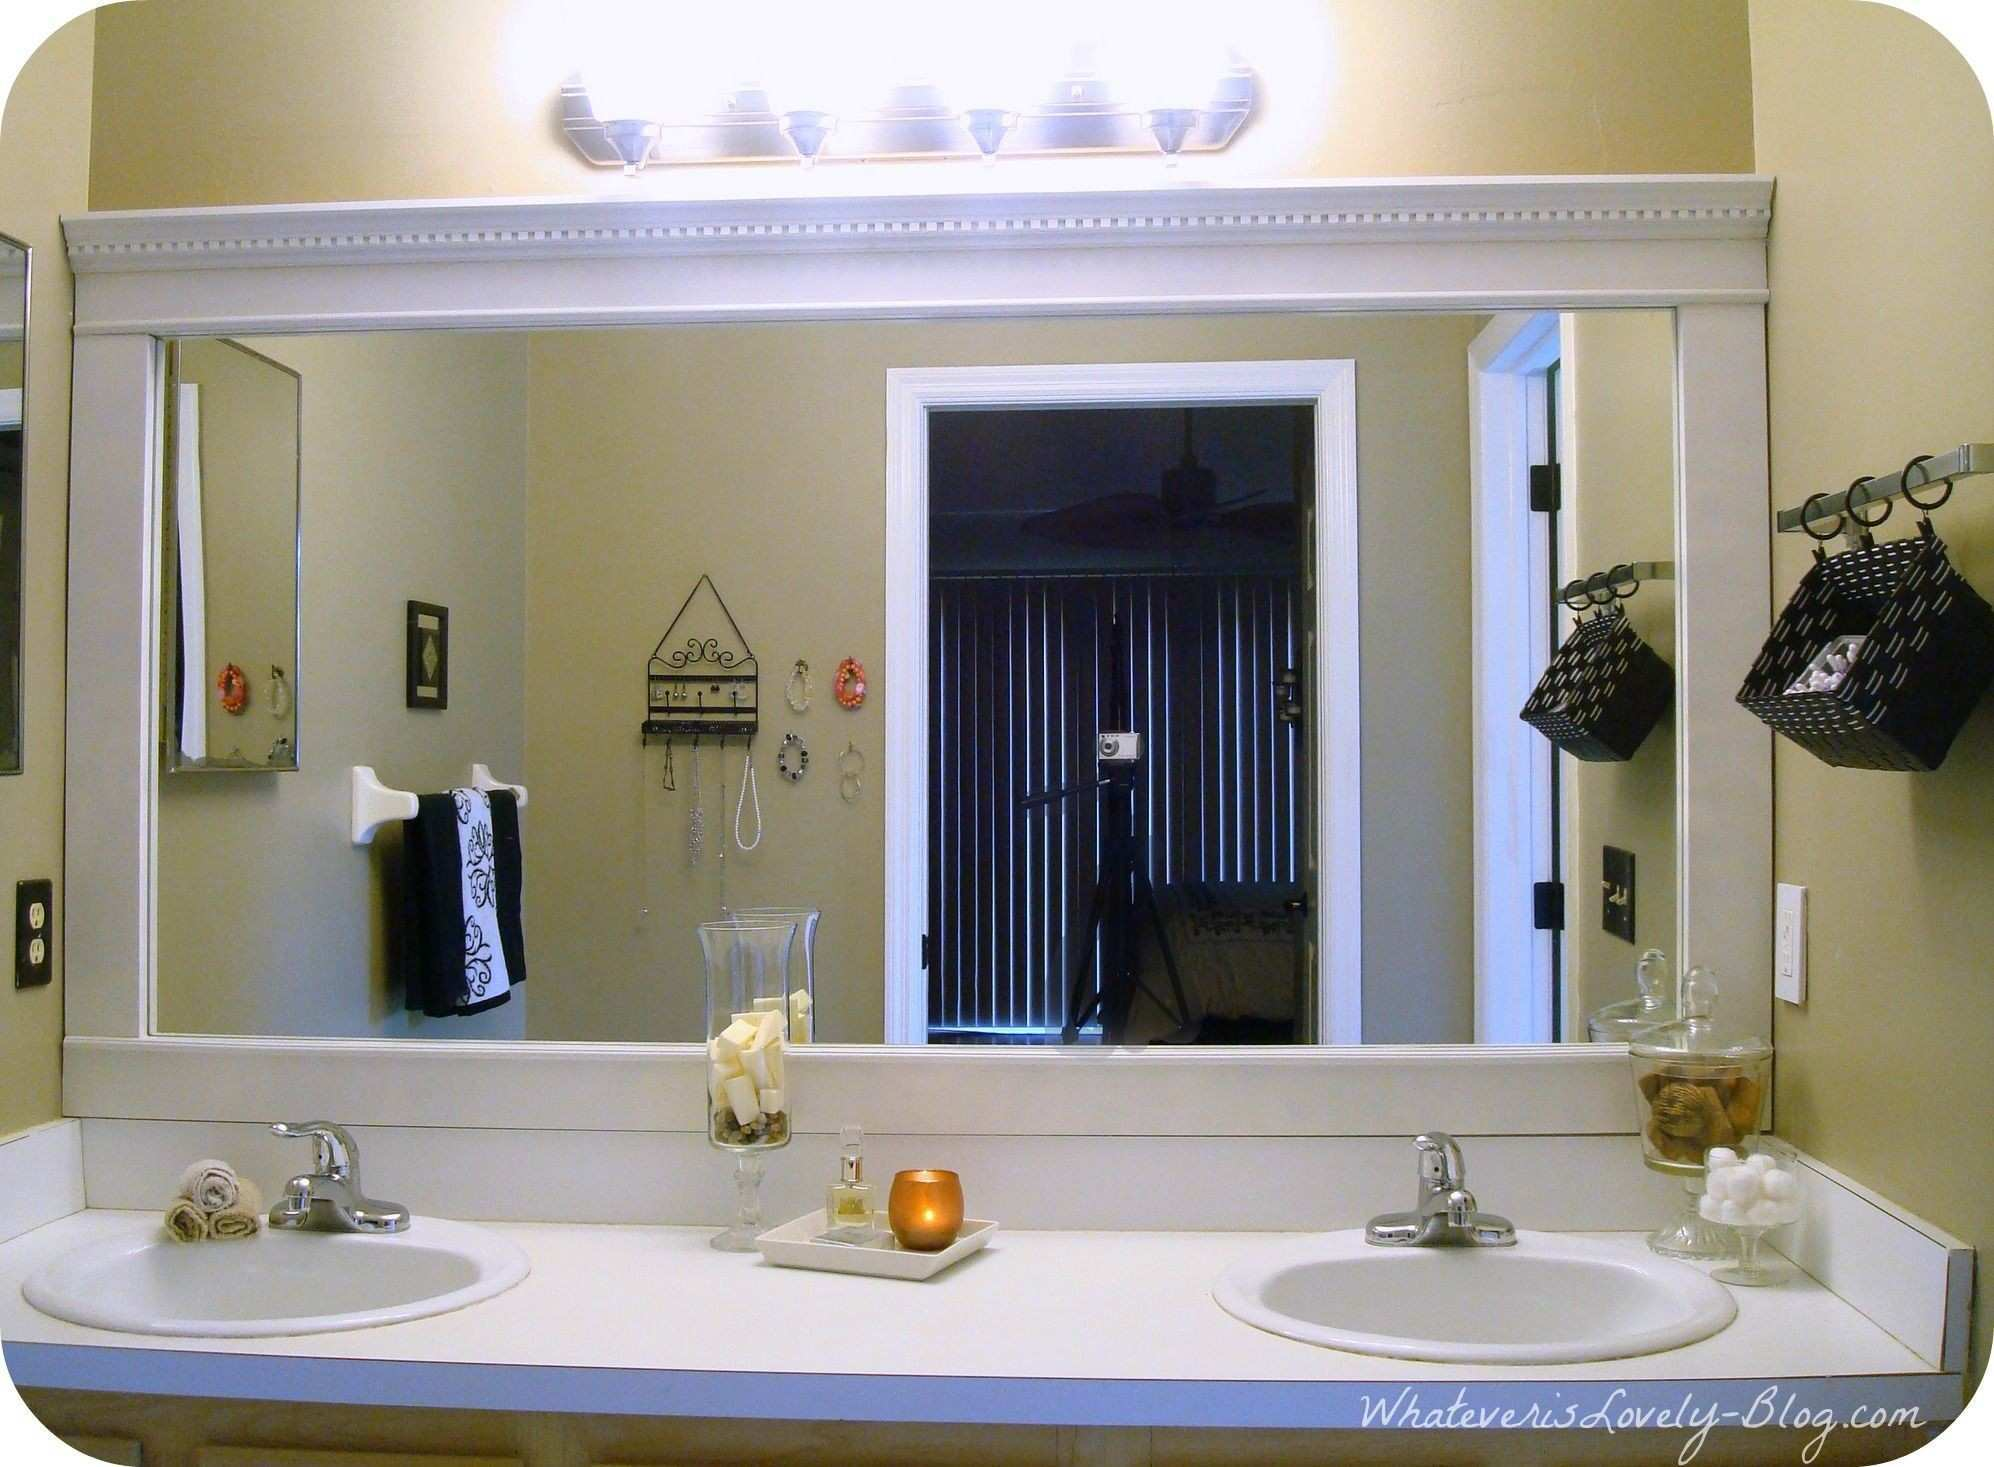 5 Tips to Create a Bathroom That Sells Get a Bigger Mirror with a